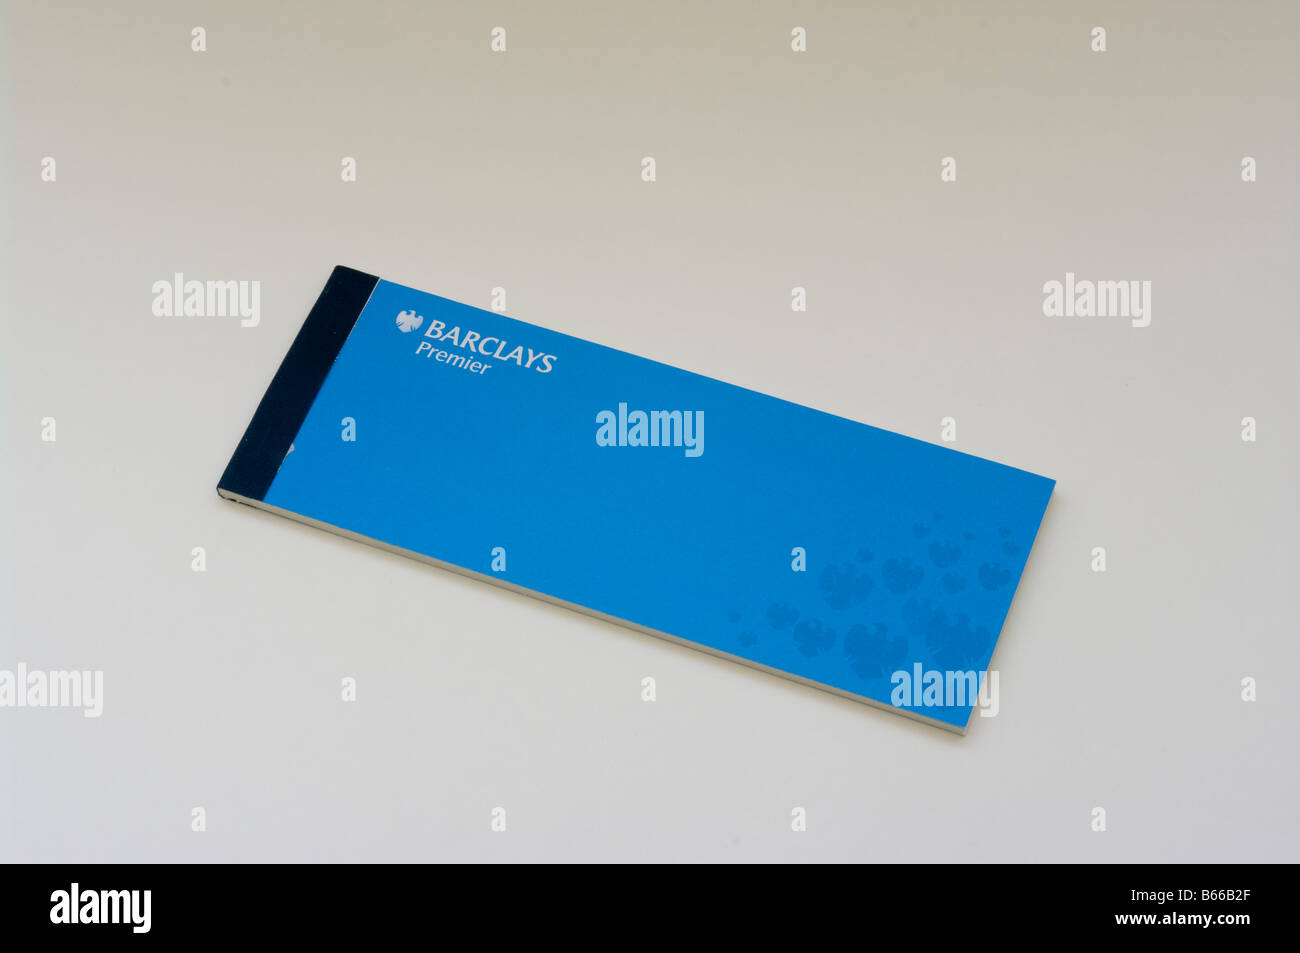 Barclays Bank Premier Cheque Book Against a White Background - Stock Image